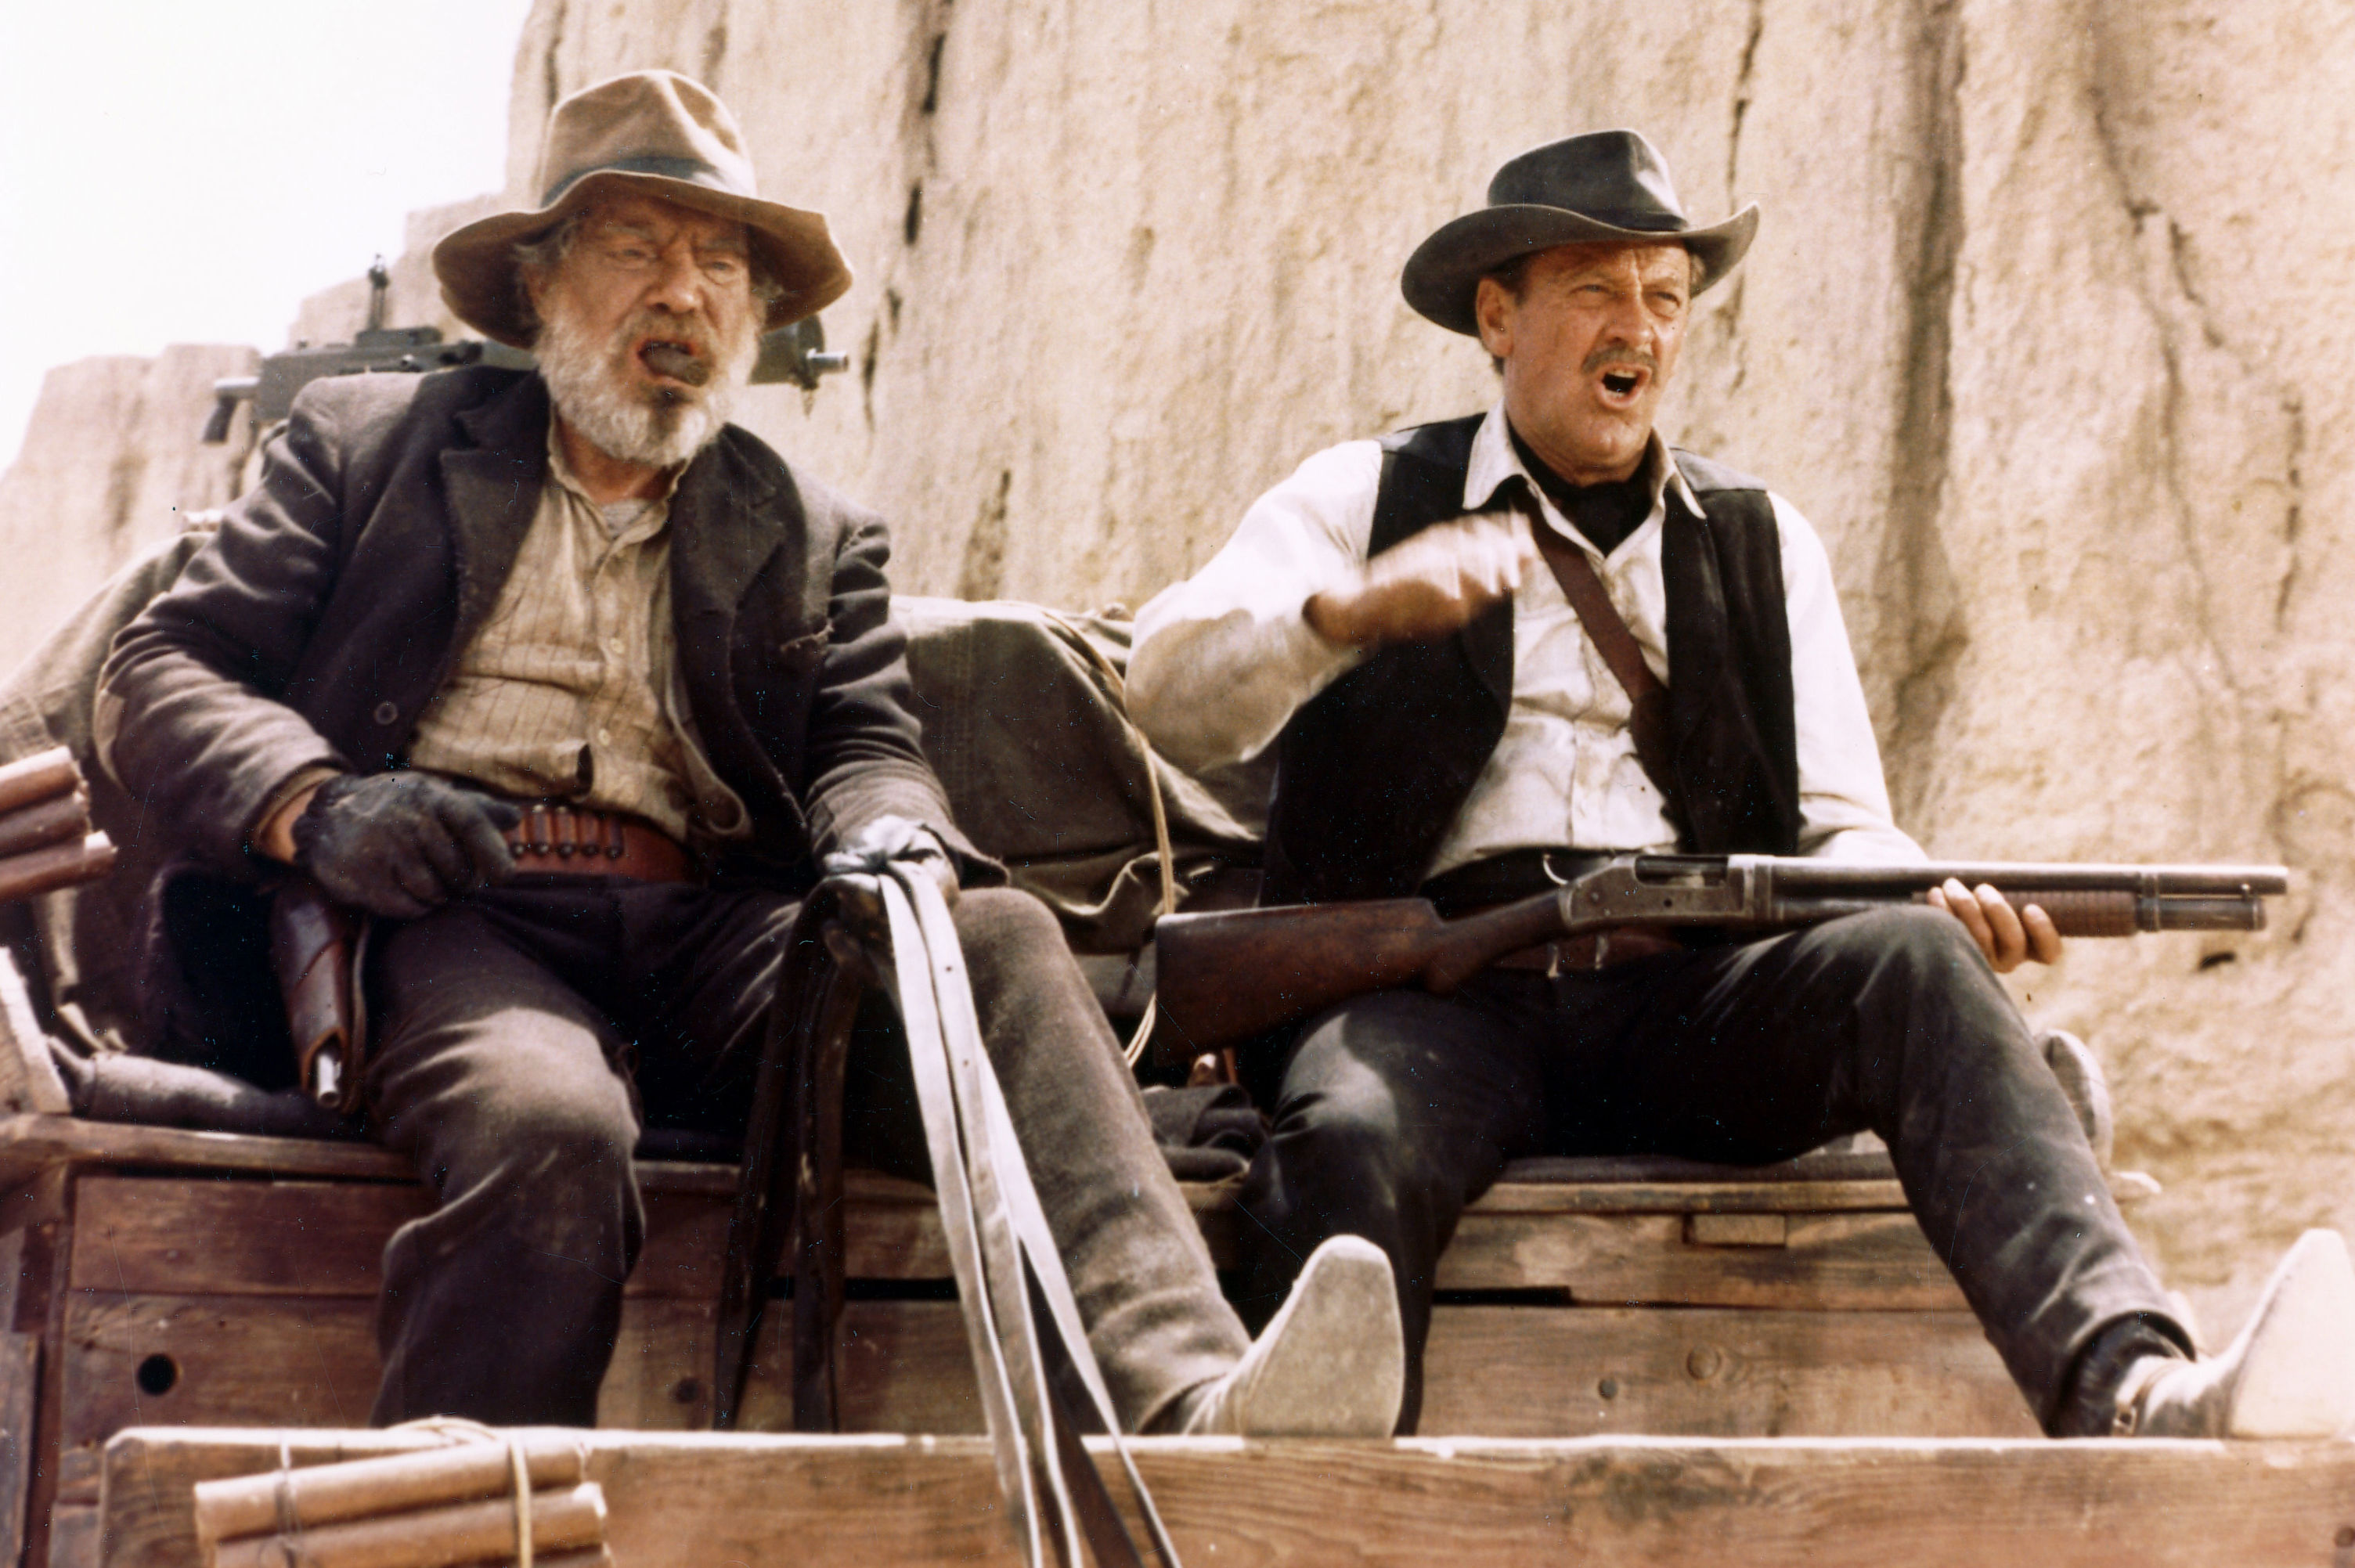 WATCH: 5 Western Movies To Watch On Netflix This Summer